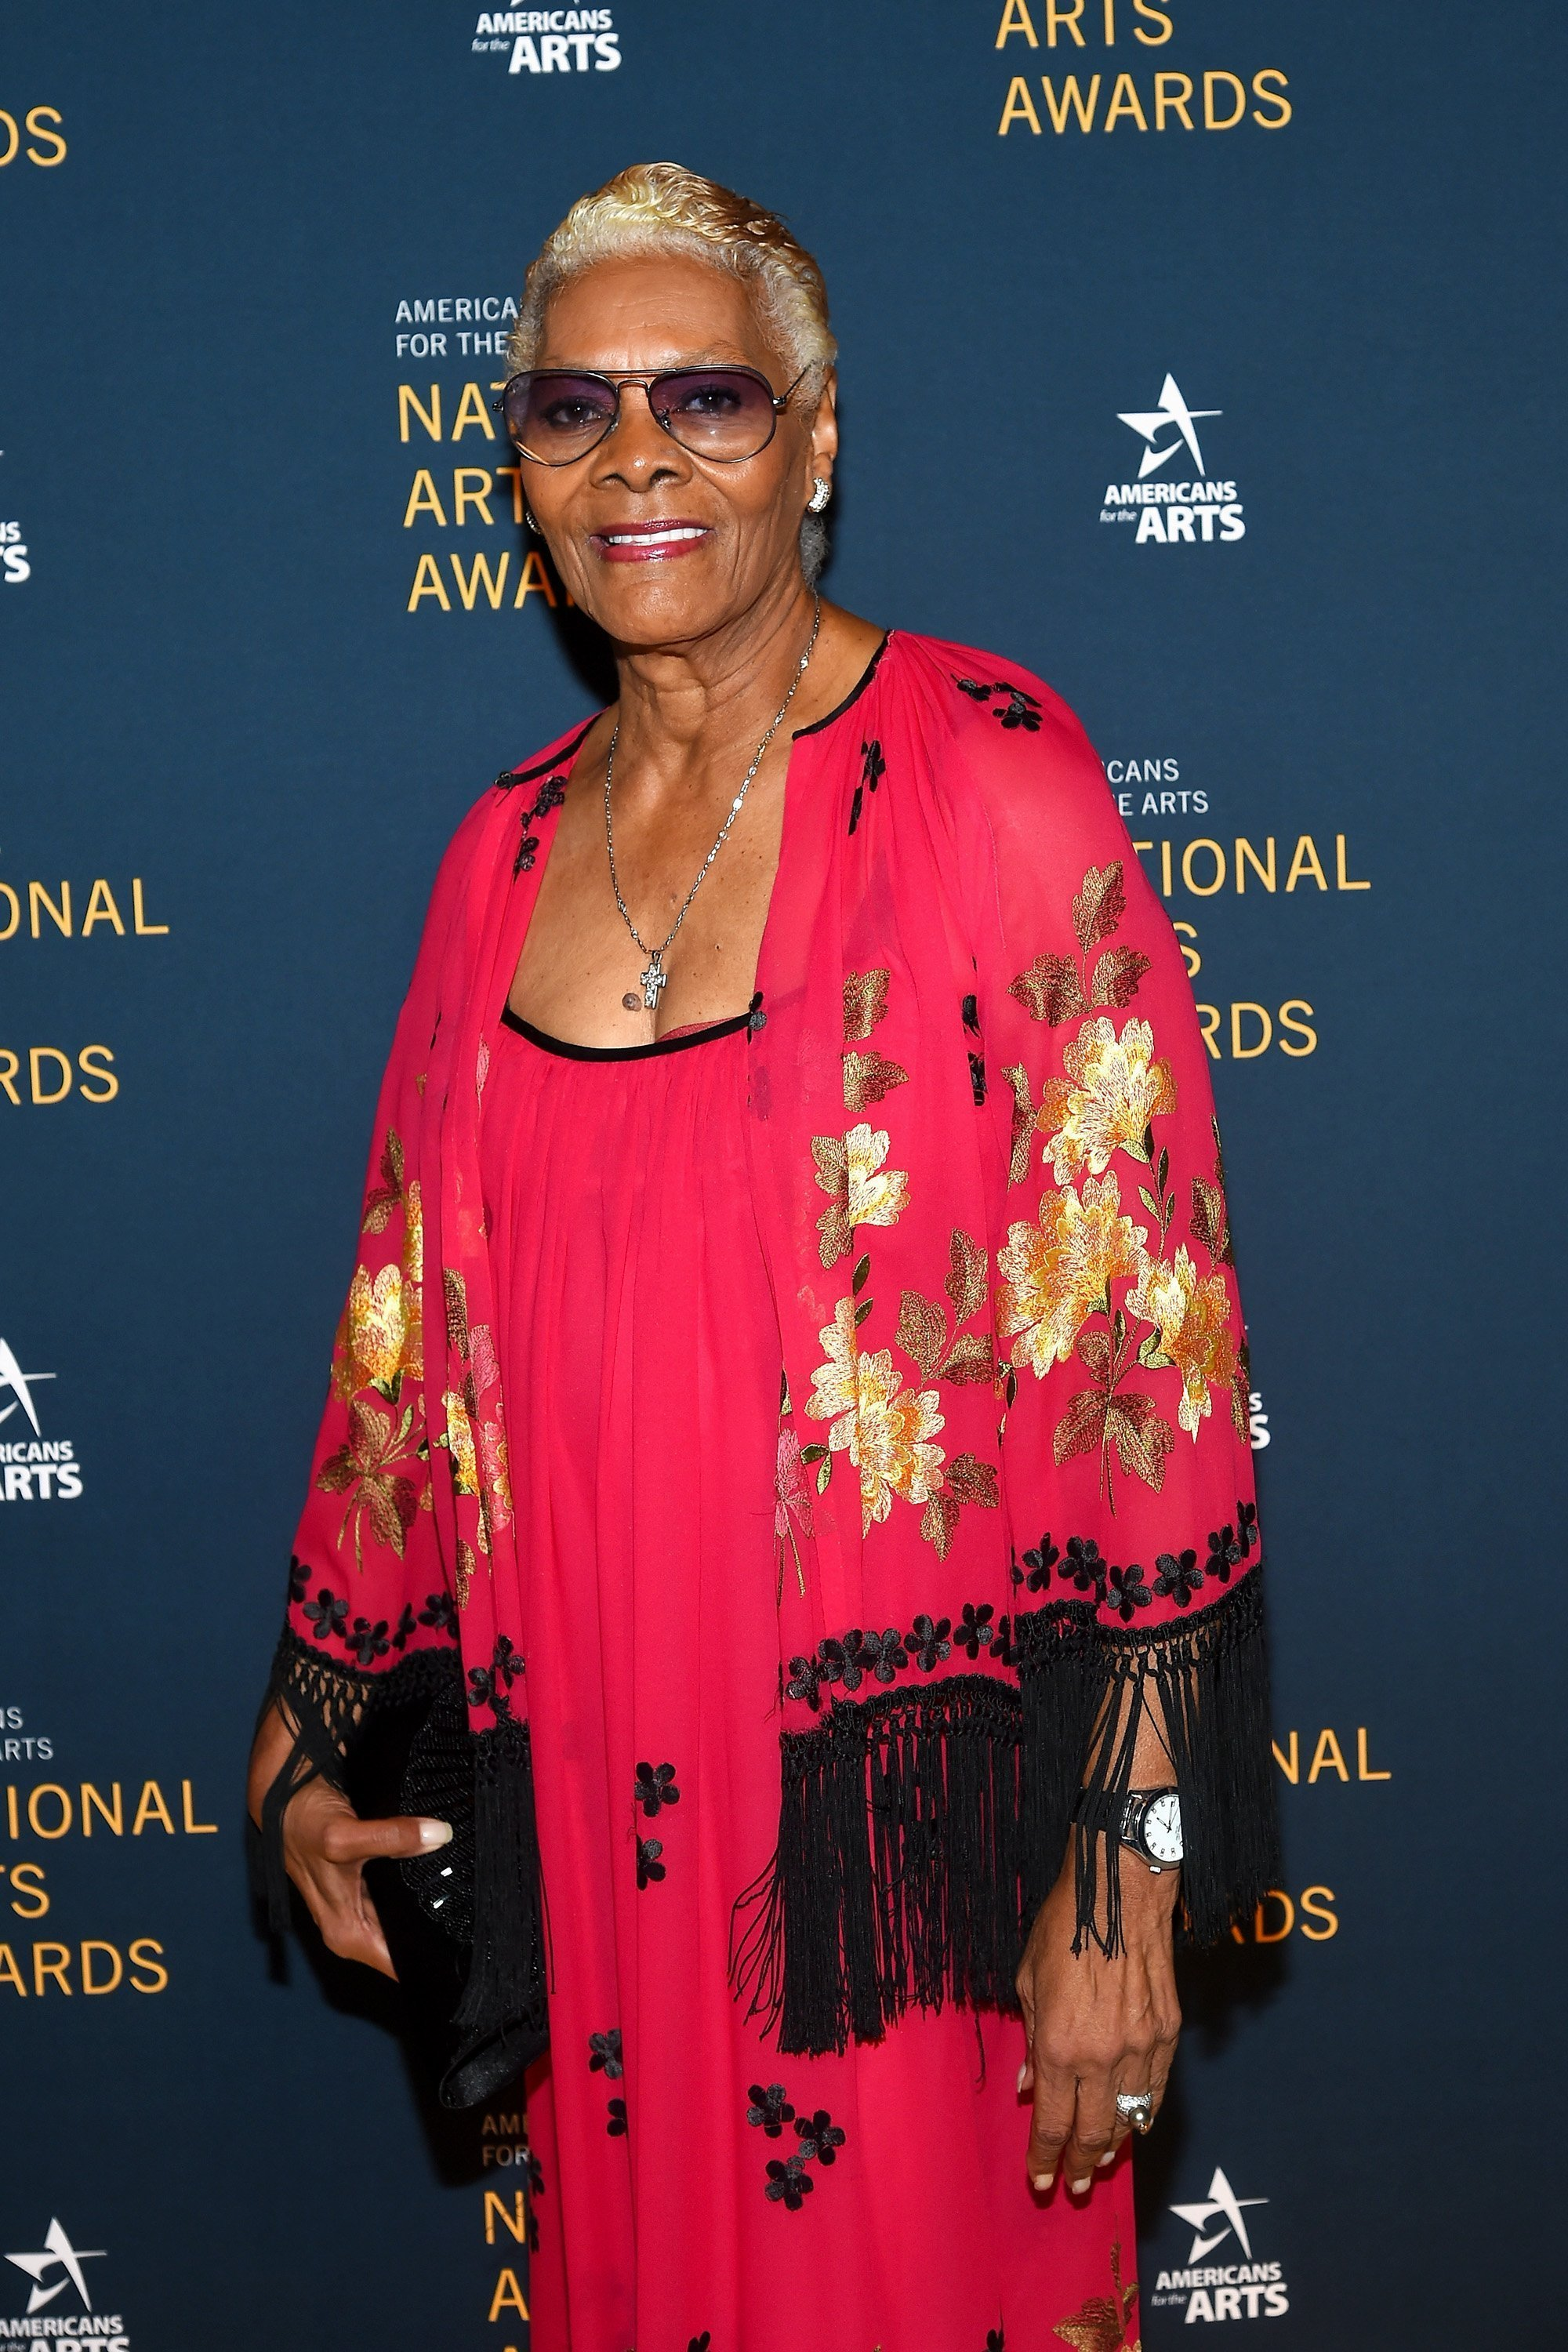 Dionne Warwick at the National Art Awards in October 2017. | Source: Getty Images